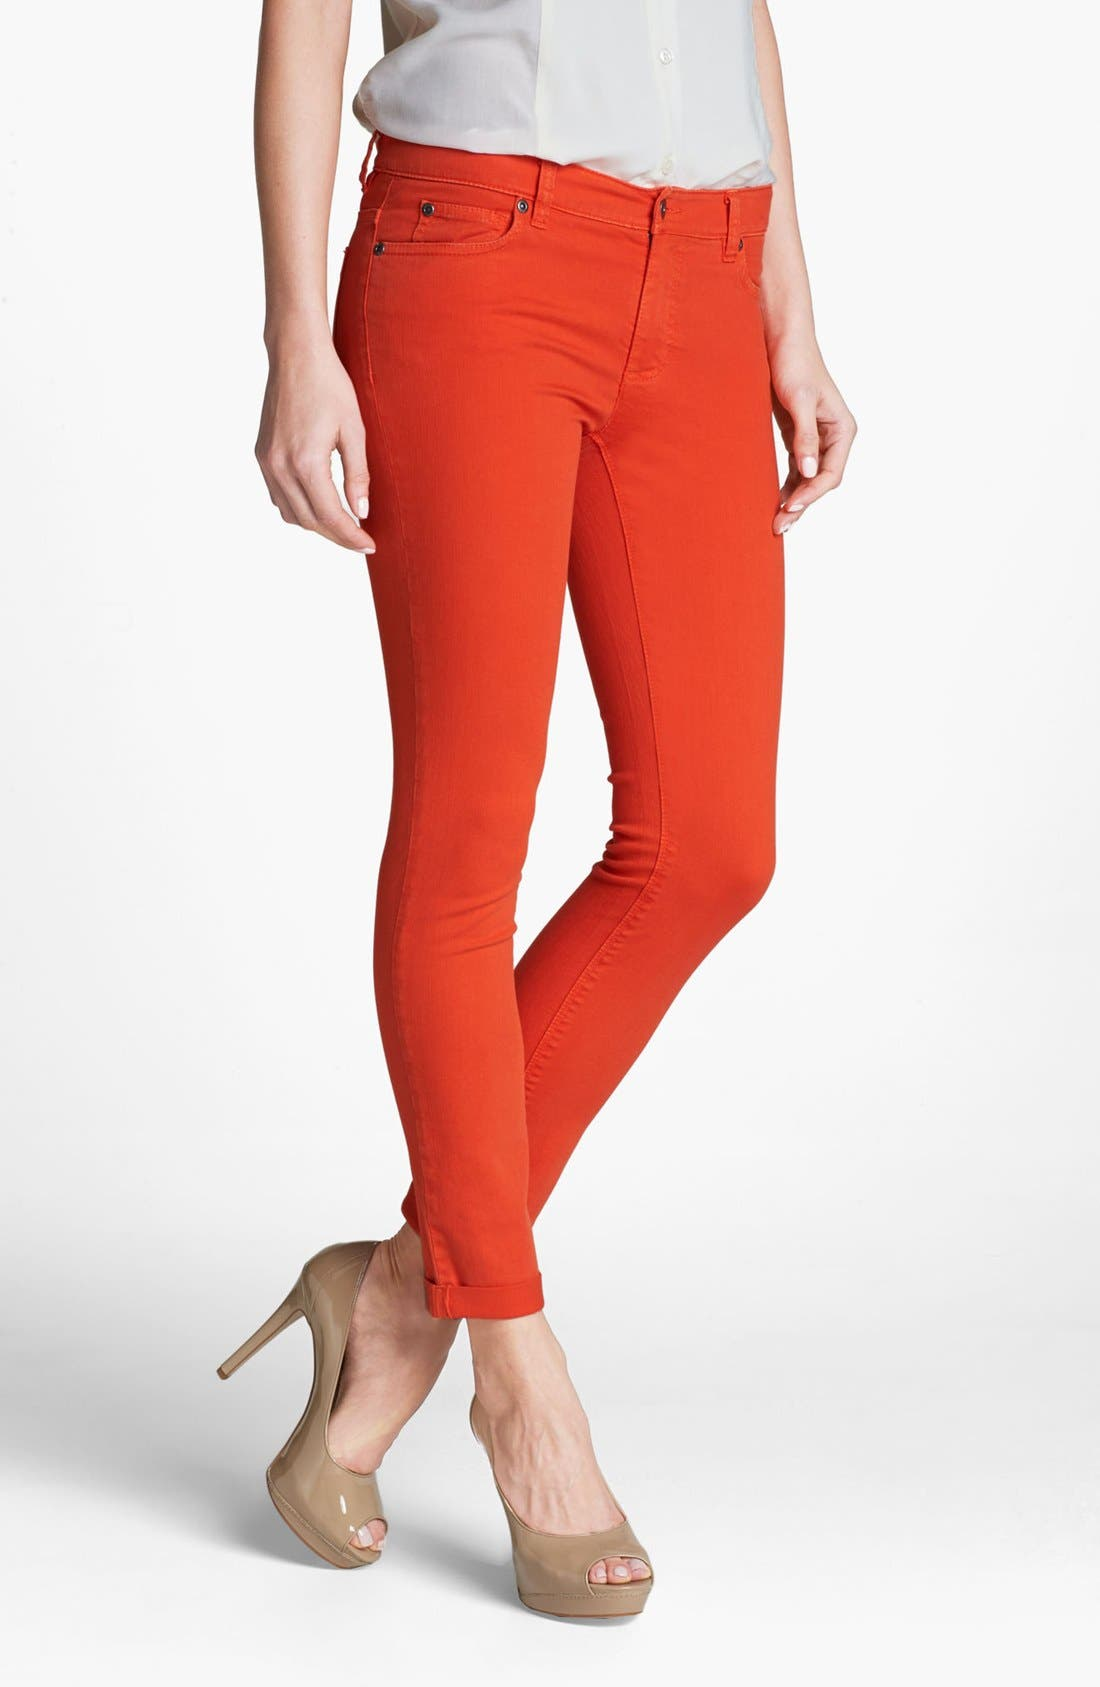 Alternate Image 1 Selected - Two by Vince Camuto Twill Jeans